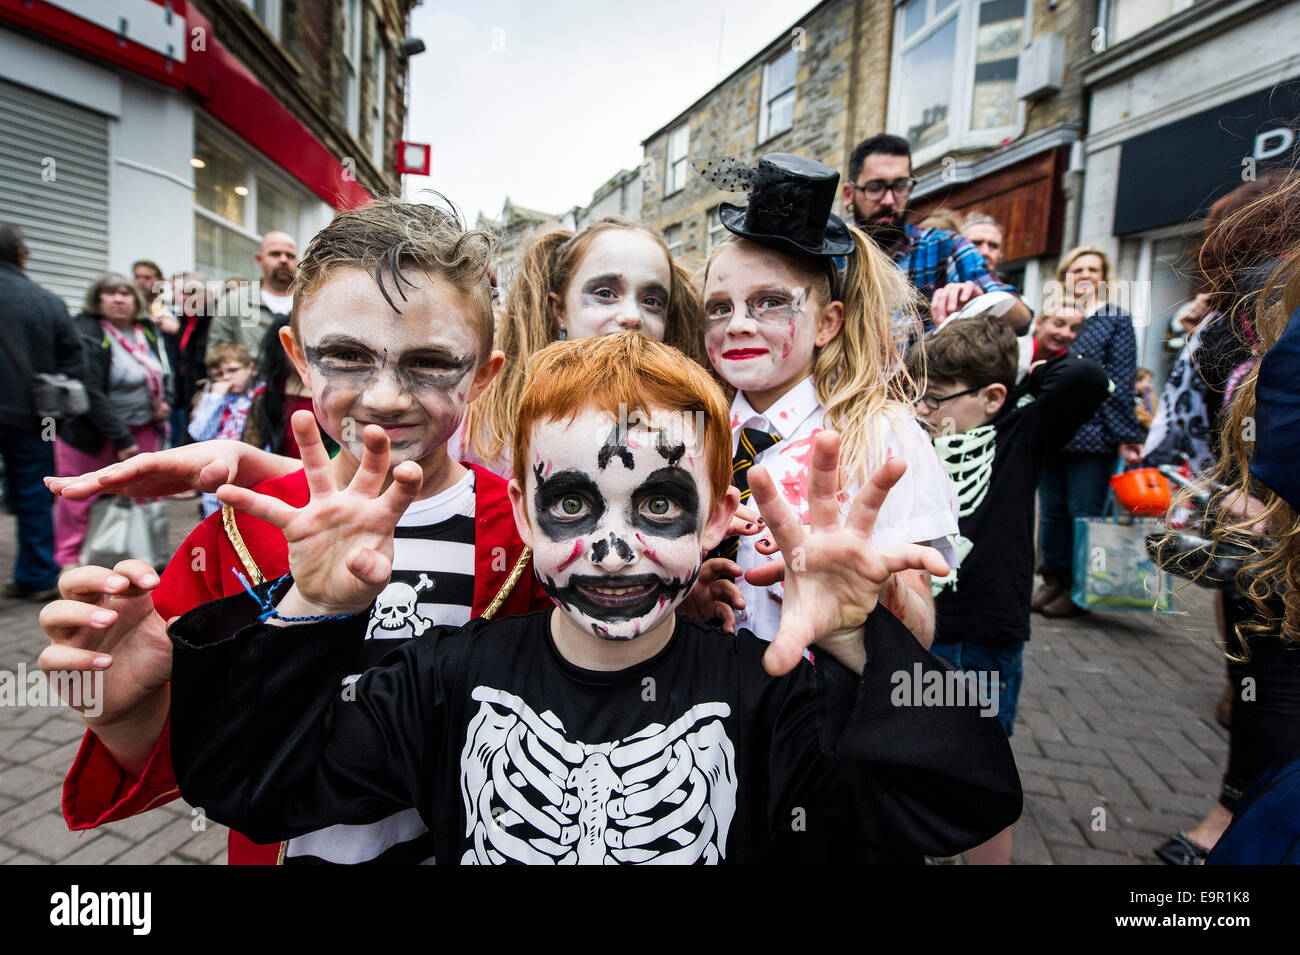 Newquay, Cornwall. 31st October 204.  Zombie Cornish children run wild along Newquay High Street. Credit:  Gordon - Stock Image